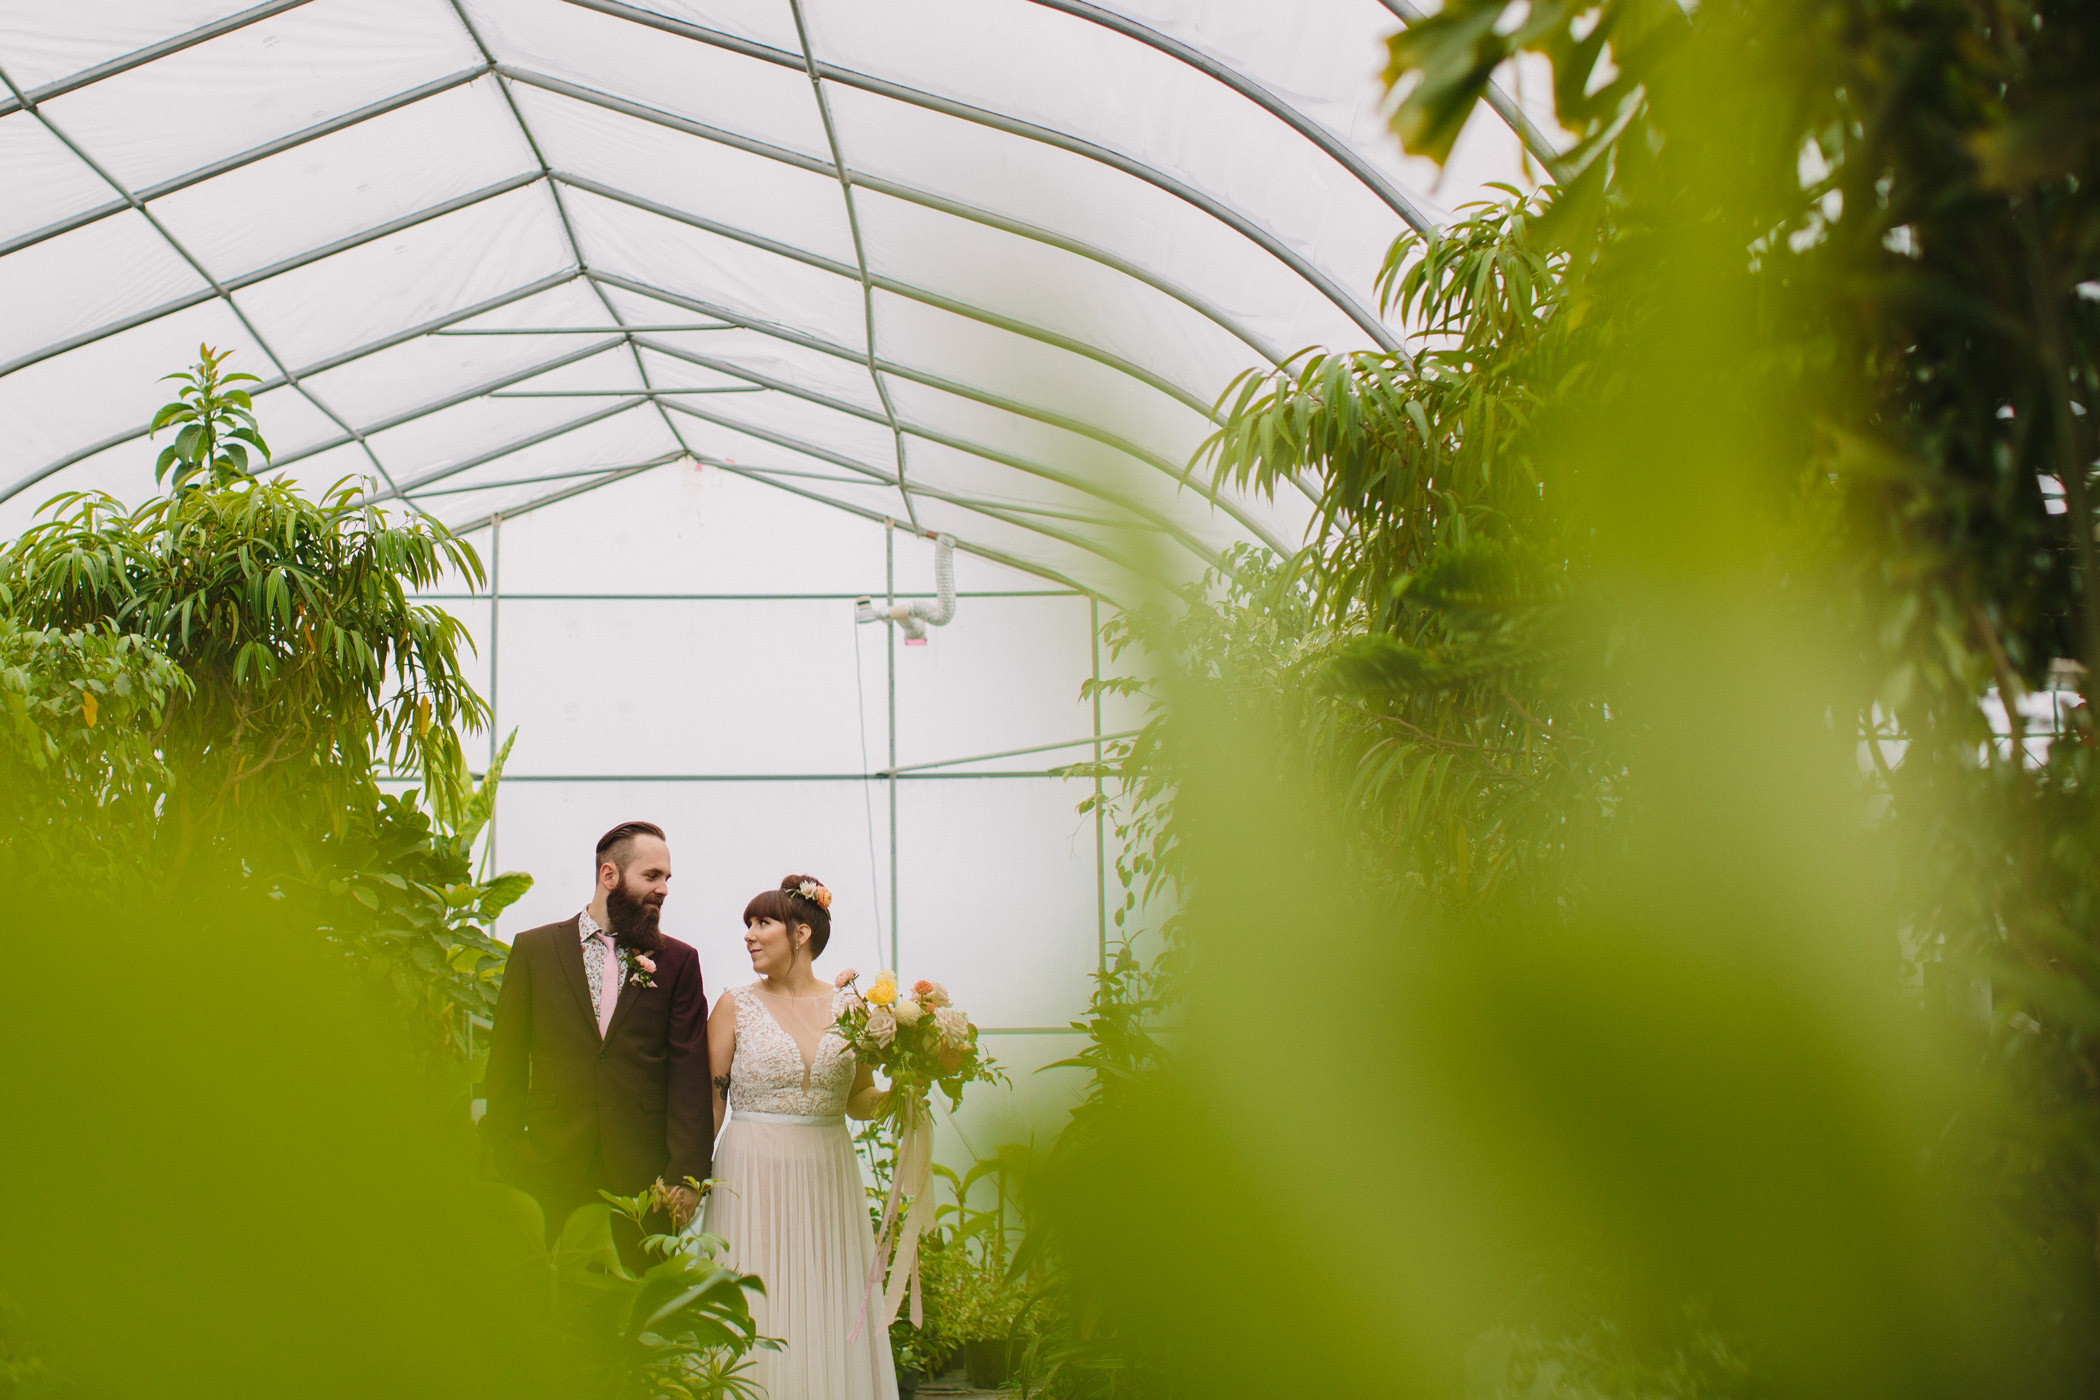 Bride and Groom Portraits in Greenhouse at Secret Gardens